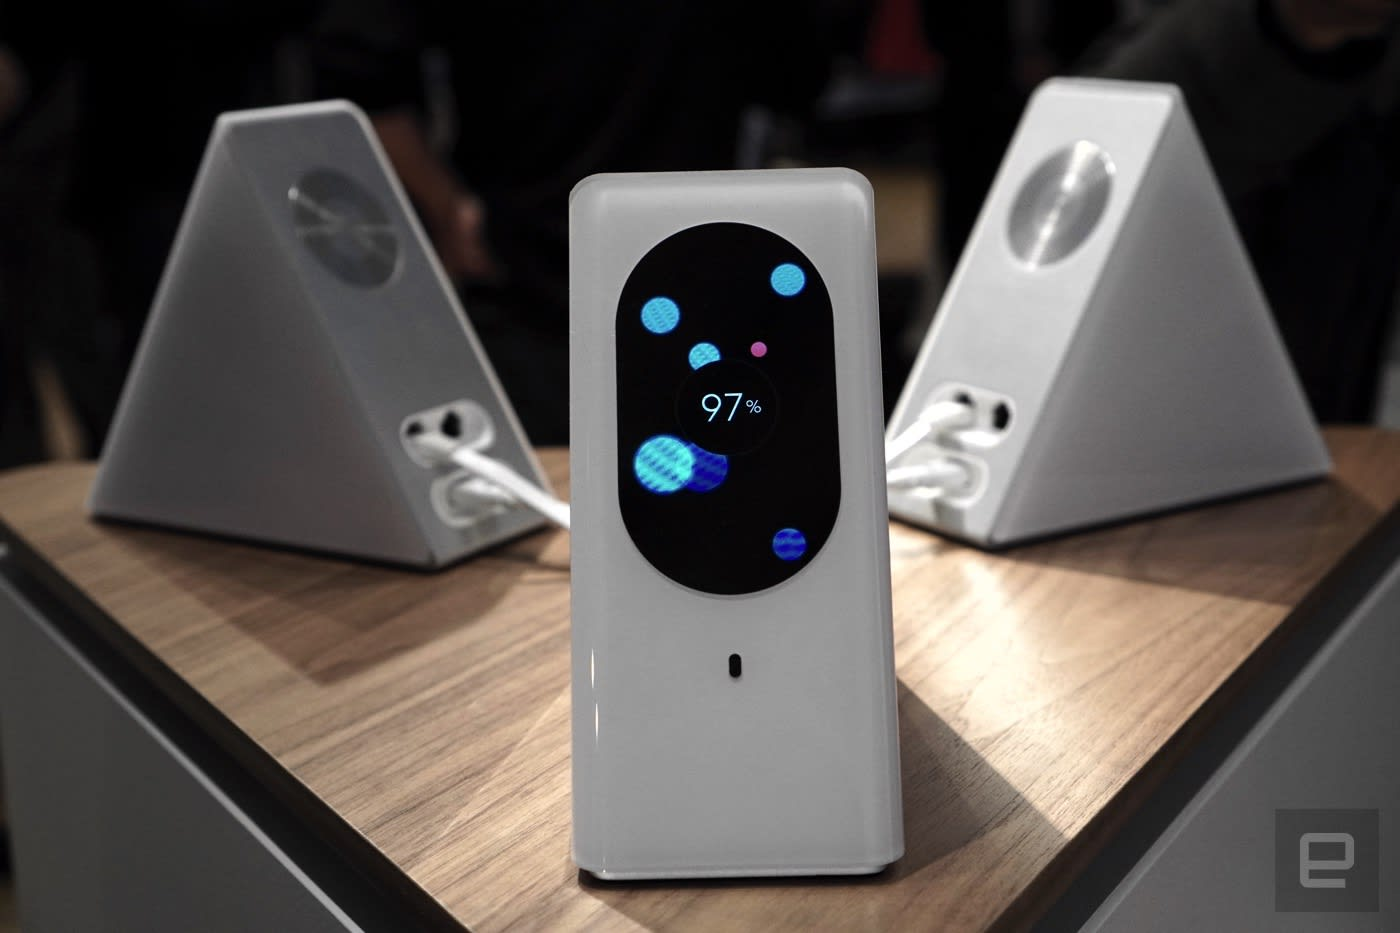 Starry's Station aims to be the smartest, prettiest WiFi router around